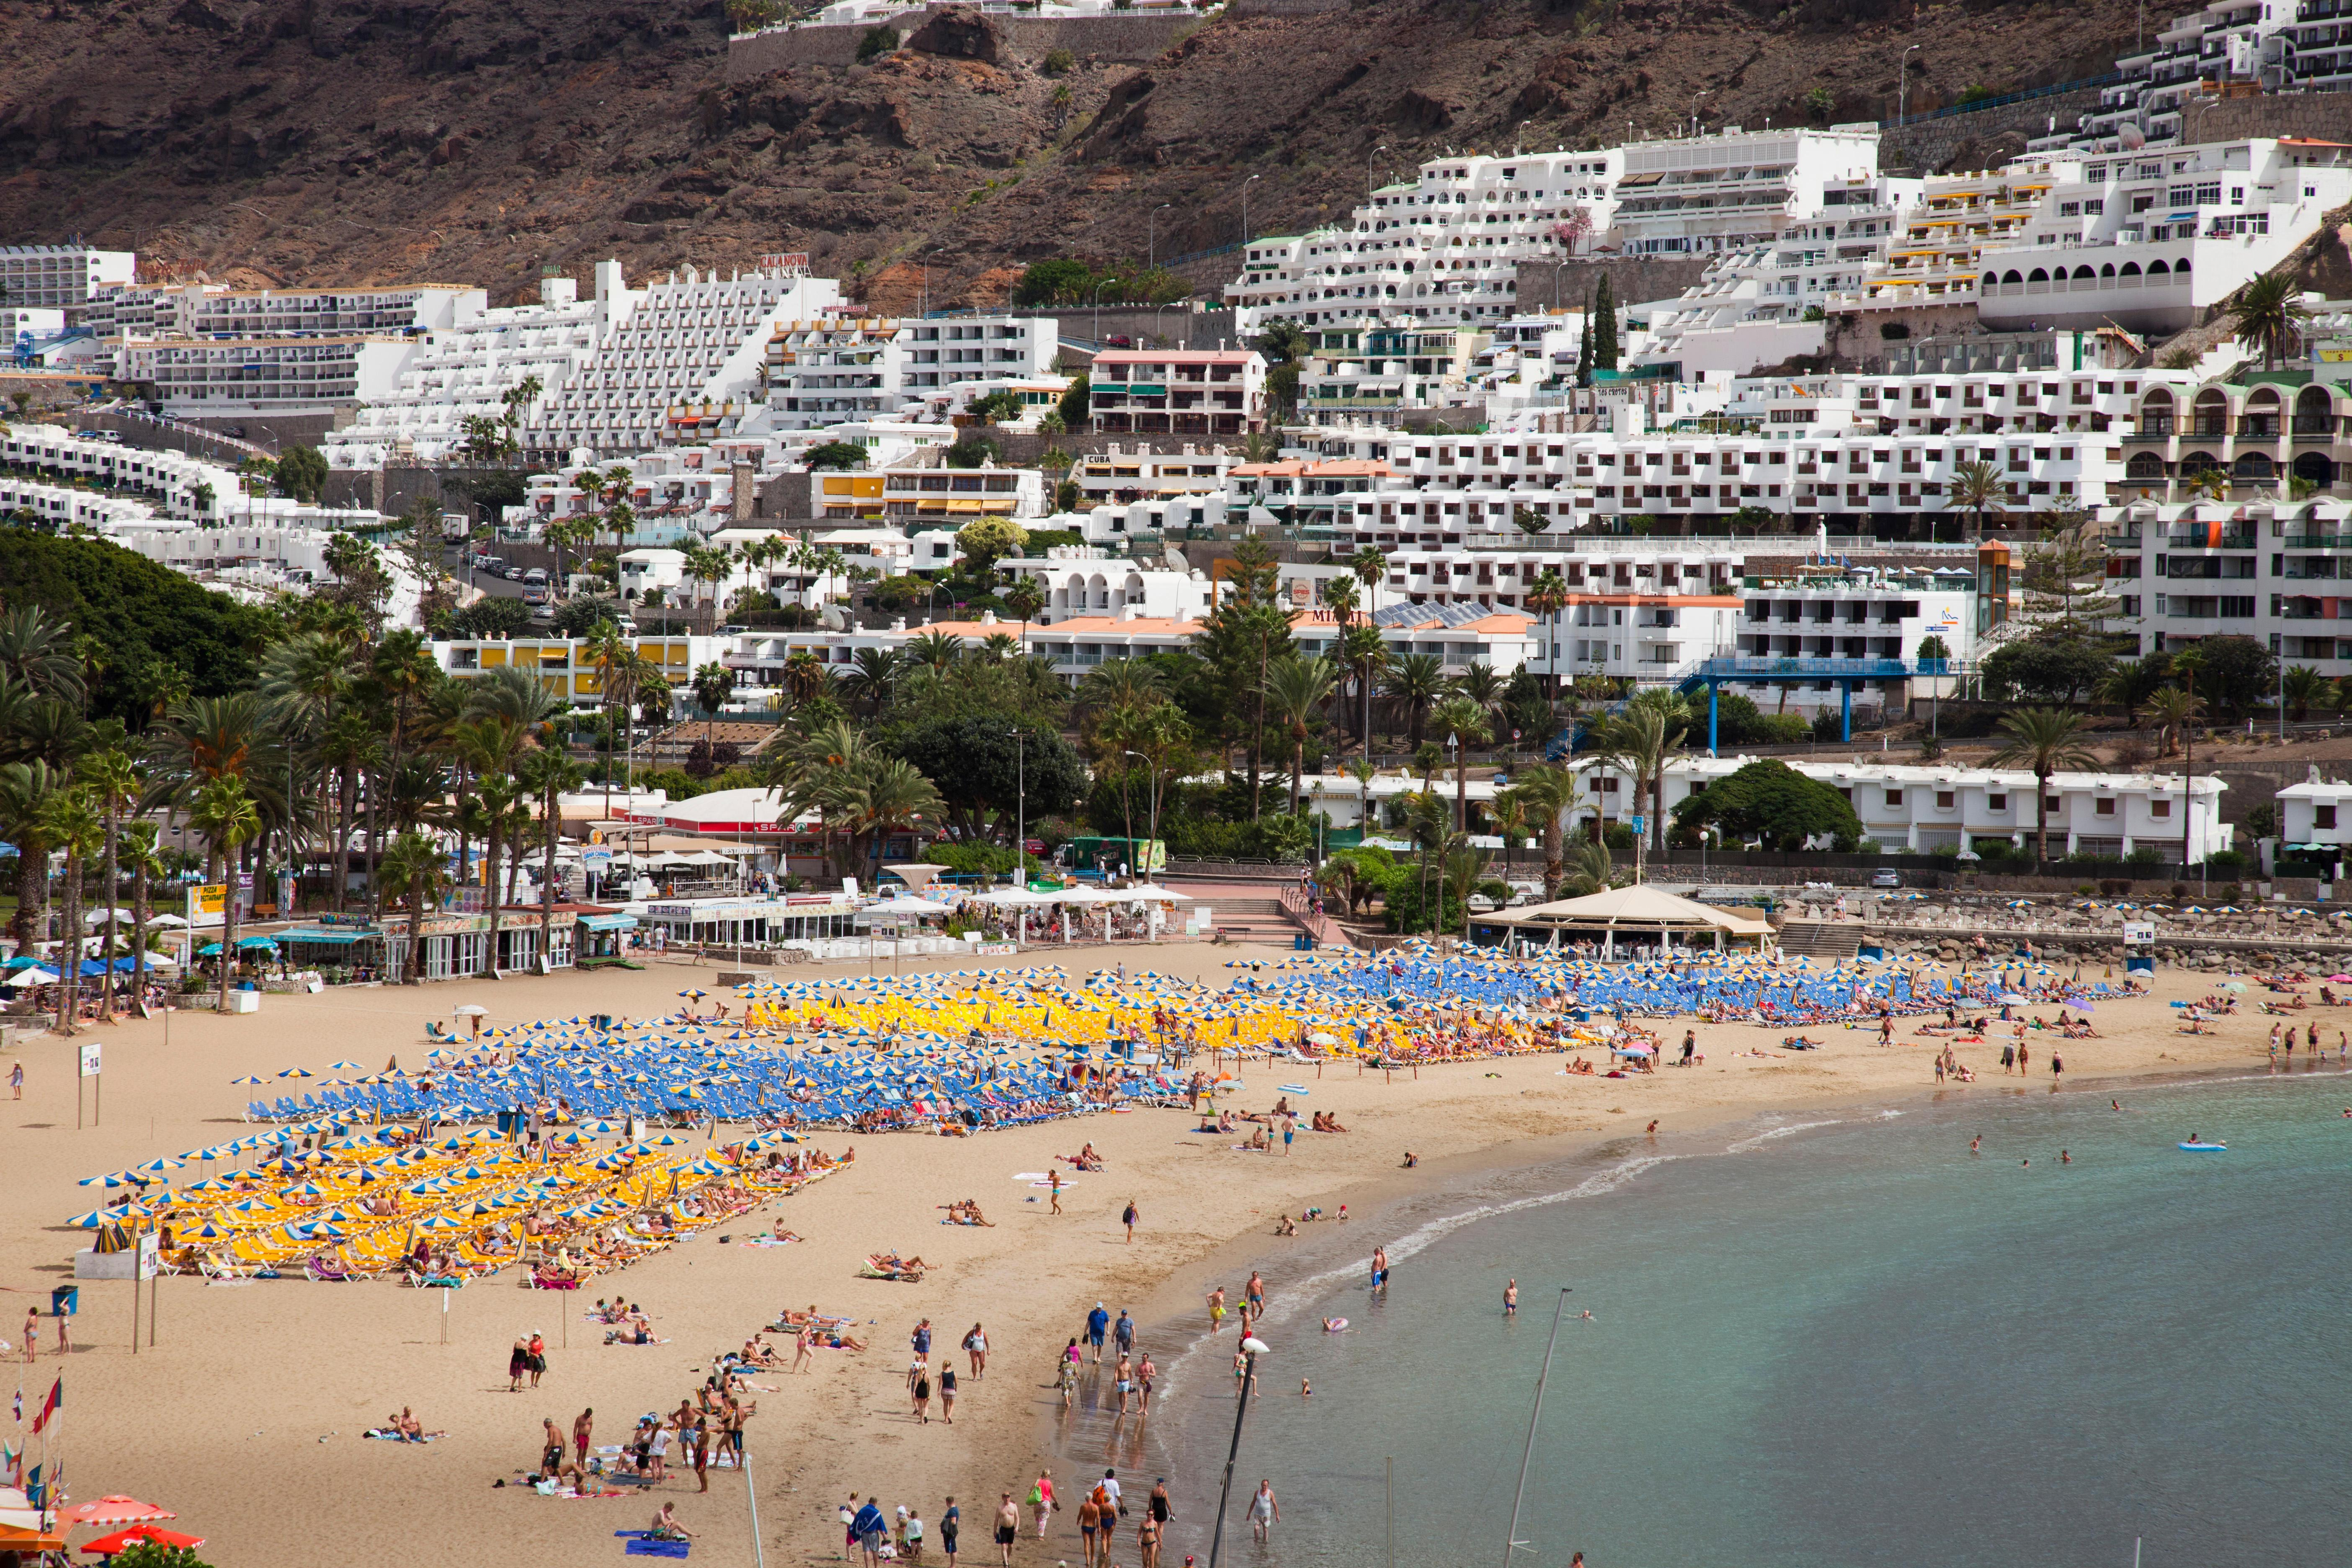 Three Brits arrested after 'mocking UK couple for being gay' on flight to Gran Canaria